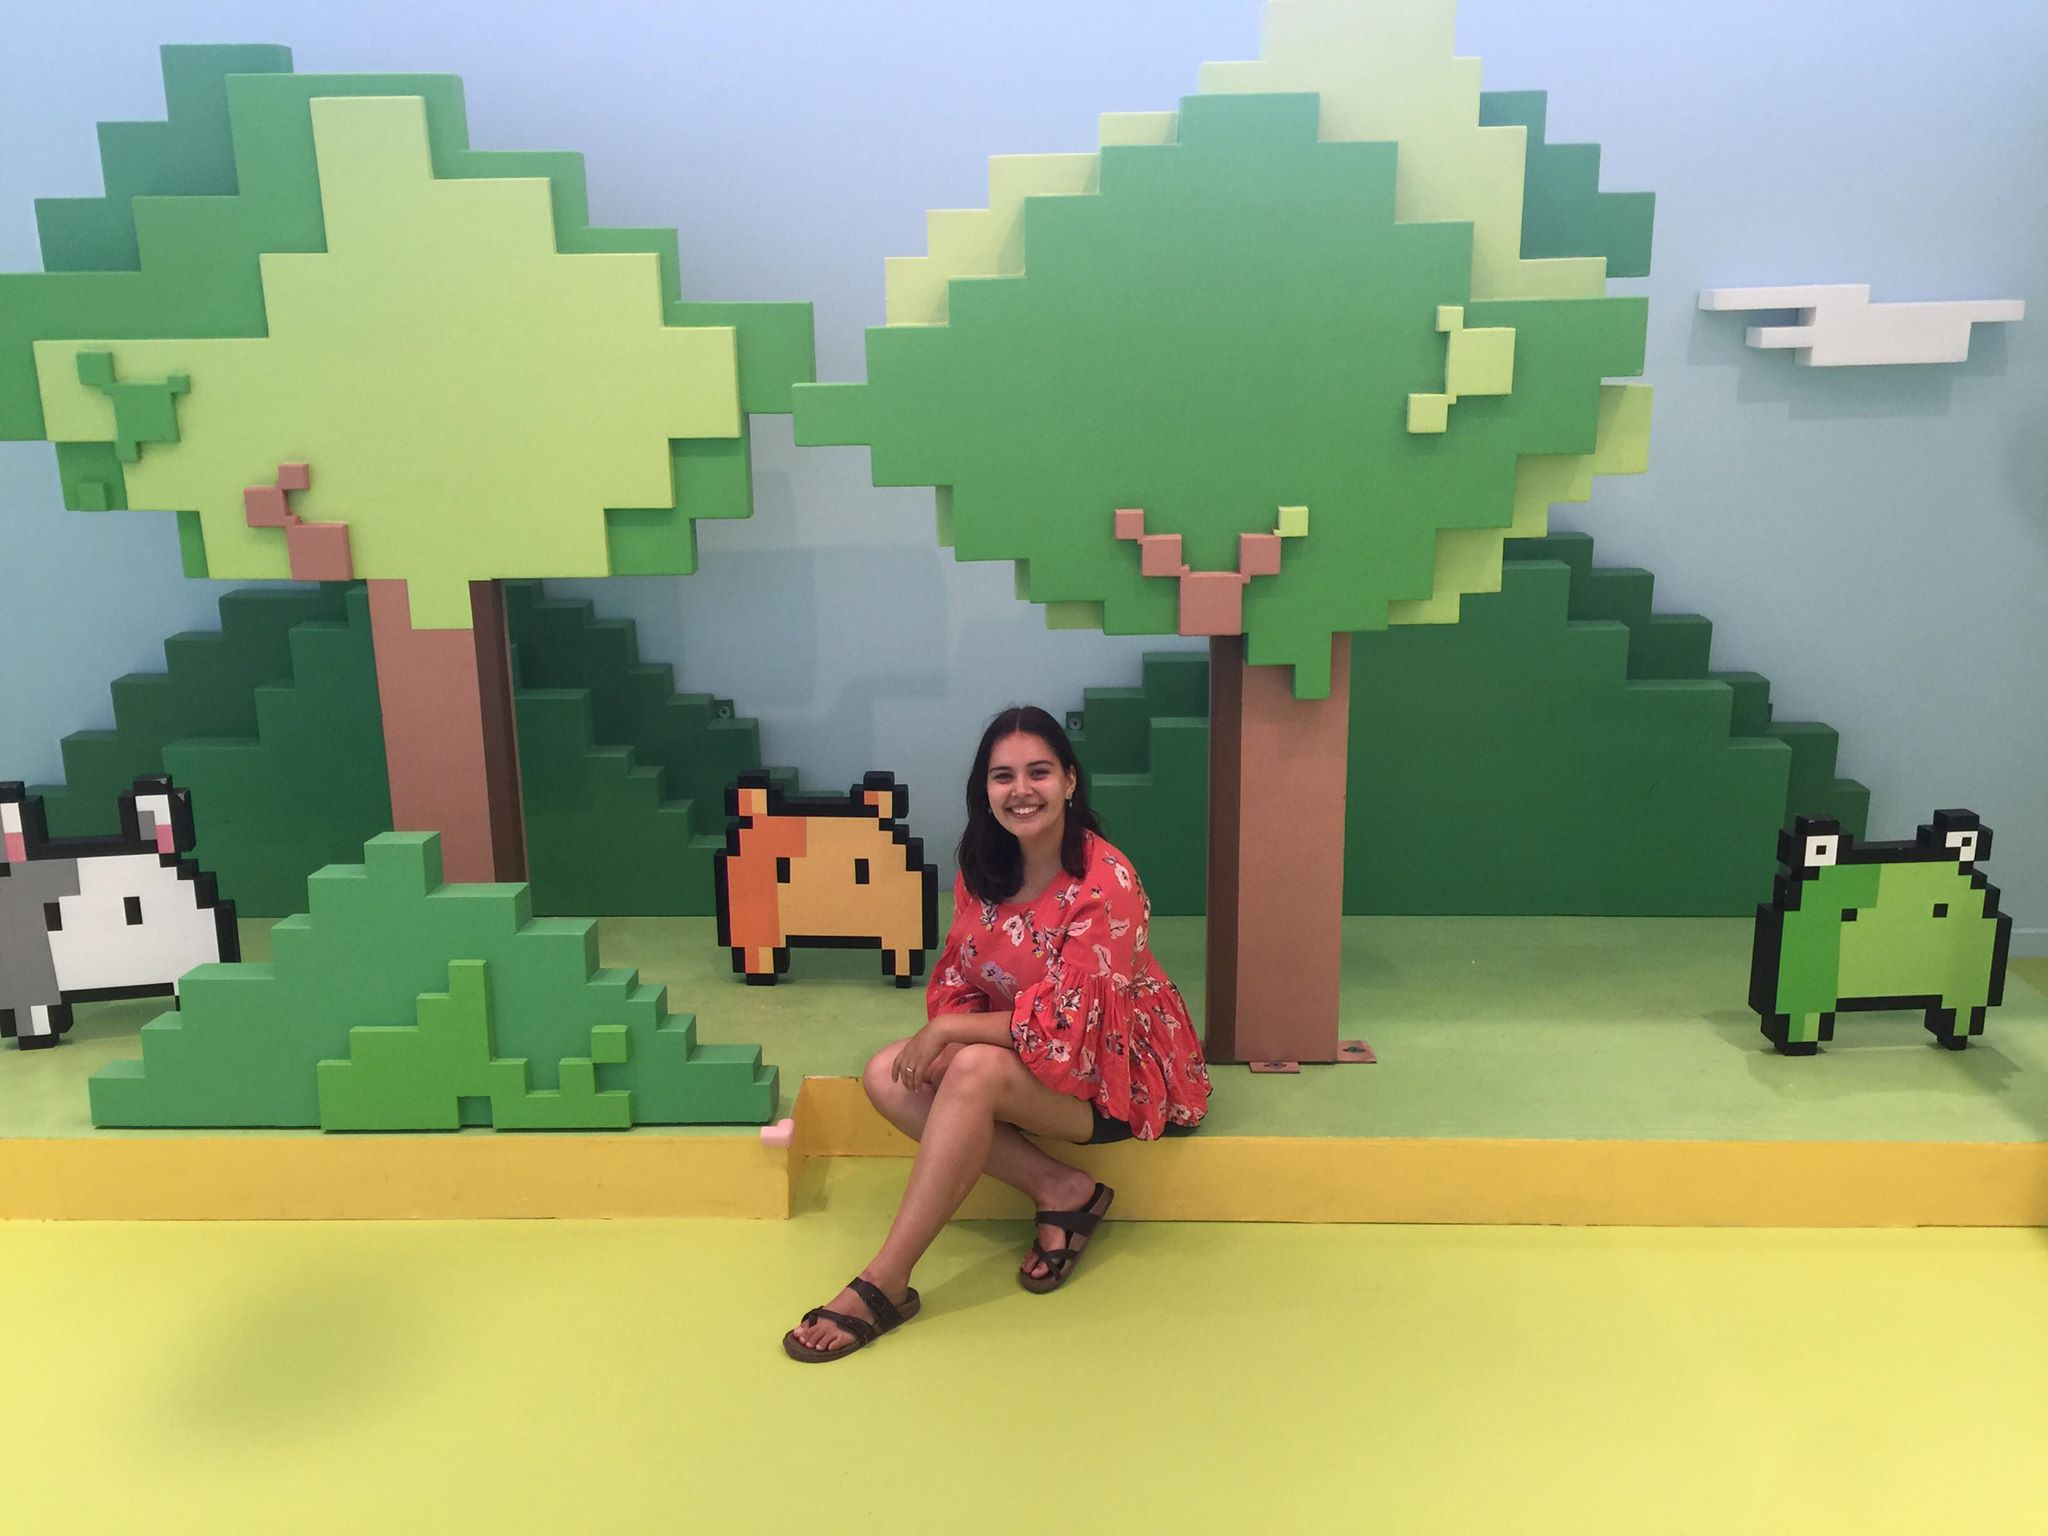 """On August 31st, 2019, Alix voyaged to the  Pixinity Pop Up  exhibition in NYC. The exhibition was a meditation on how electronics help us communicate, but for Alix, the 8-bit art represented how people removed from """"wild"""" spaces relate to these """"wilds"""" from the comfort of urban settings (such as behind computer screens). Check out artist Tianyu Qiu's website  here ."""